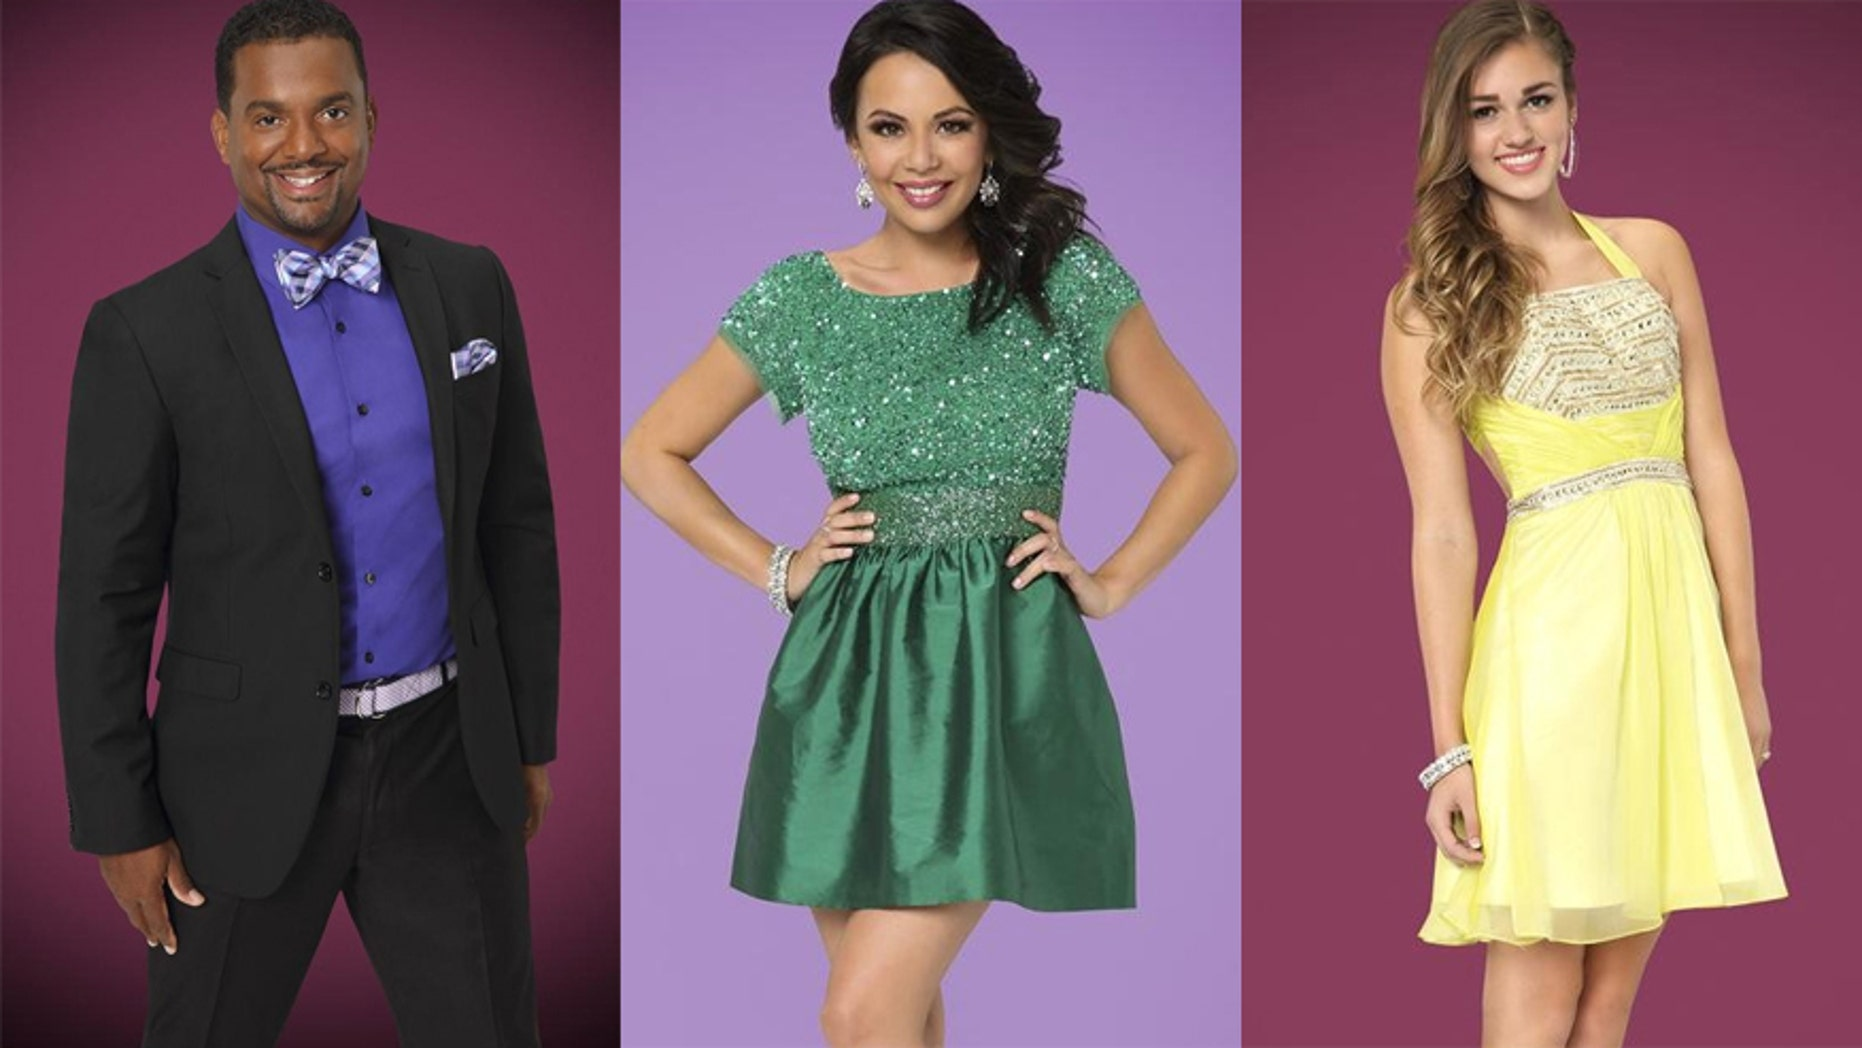 """Dancing With The Stars"" top 3 from left: Alfonso Ribeiro, Janel Parrish and Sadie Robertson."